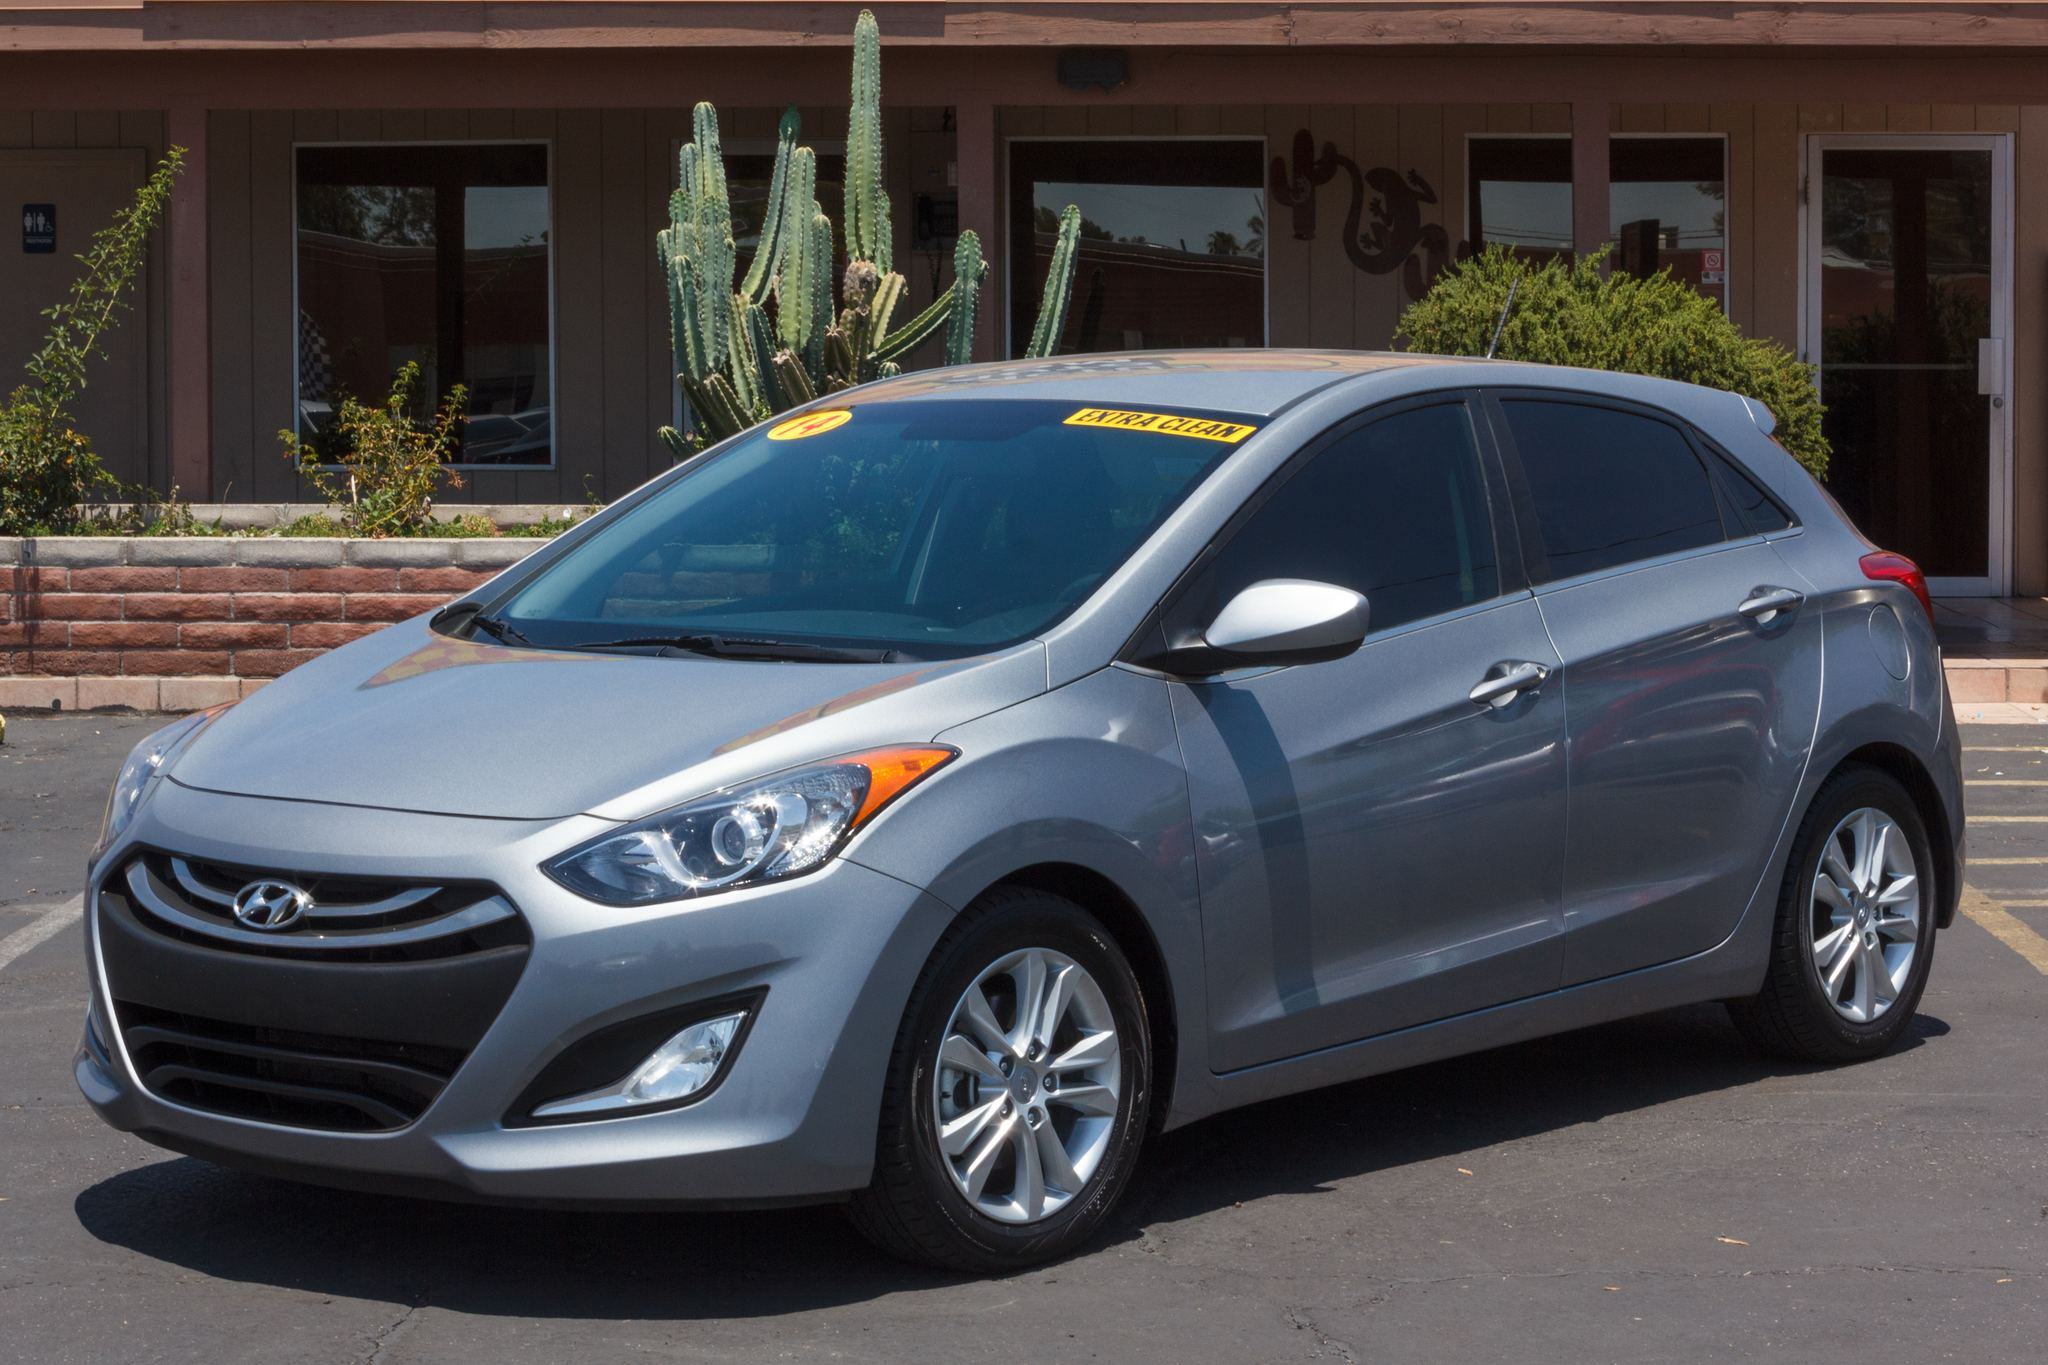 Photo of 2014 Hyundai Elantra GT 4d Hatchback 6spd